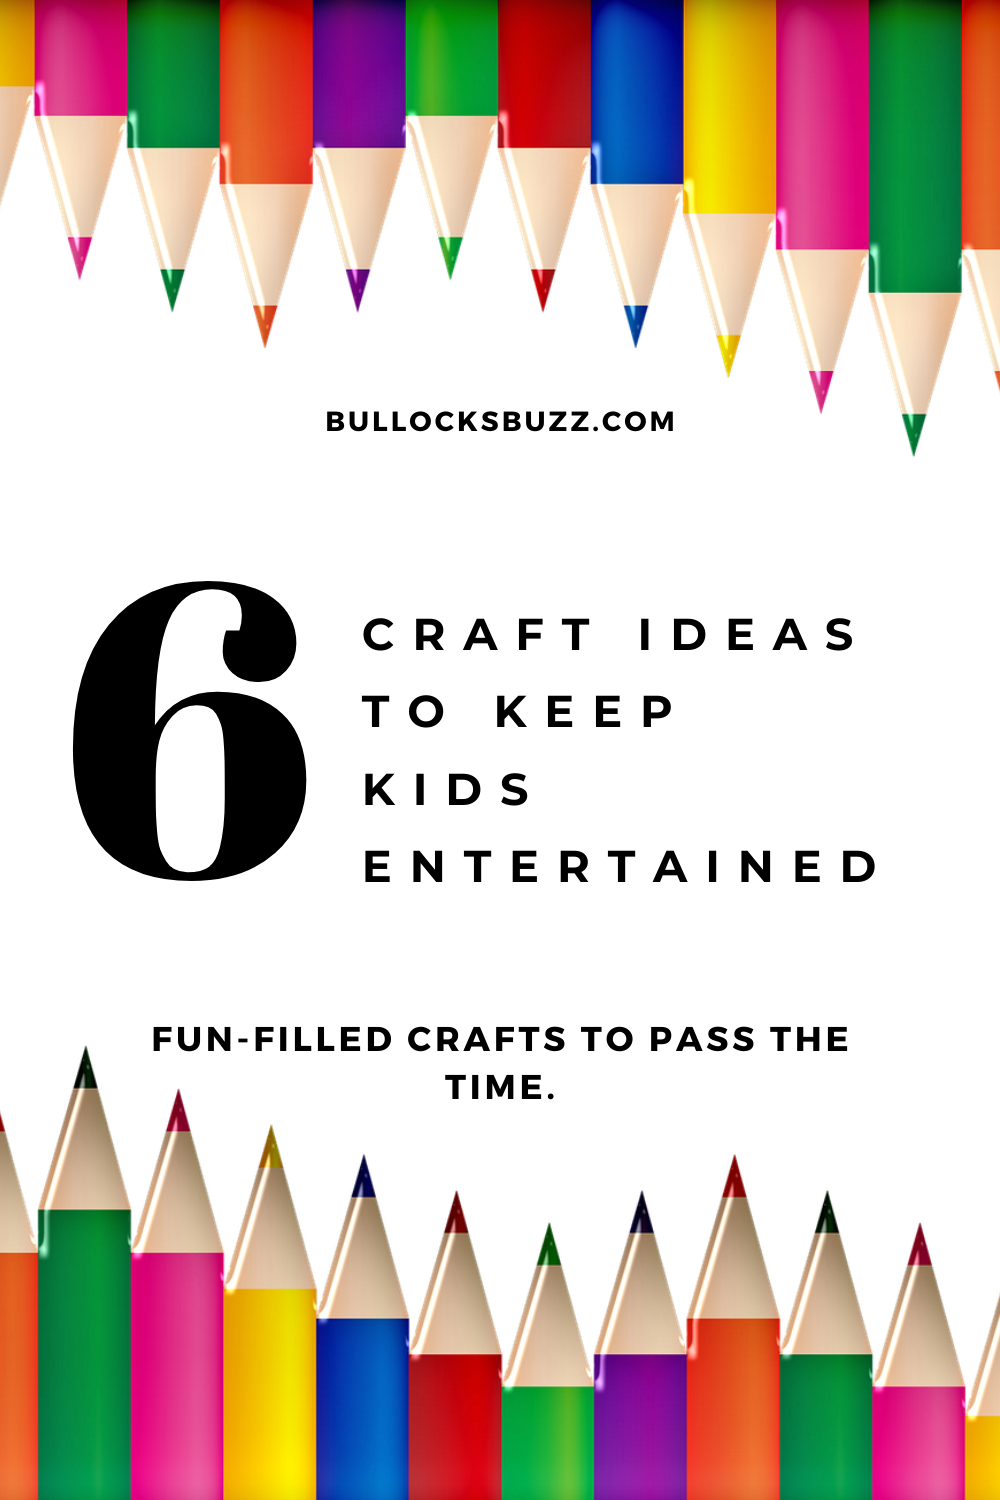 Being a mom means being busy, and that means we don't have a lot of time to play with the kids. Here are six craft ideas to keep your kids entertained.